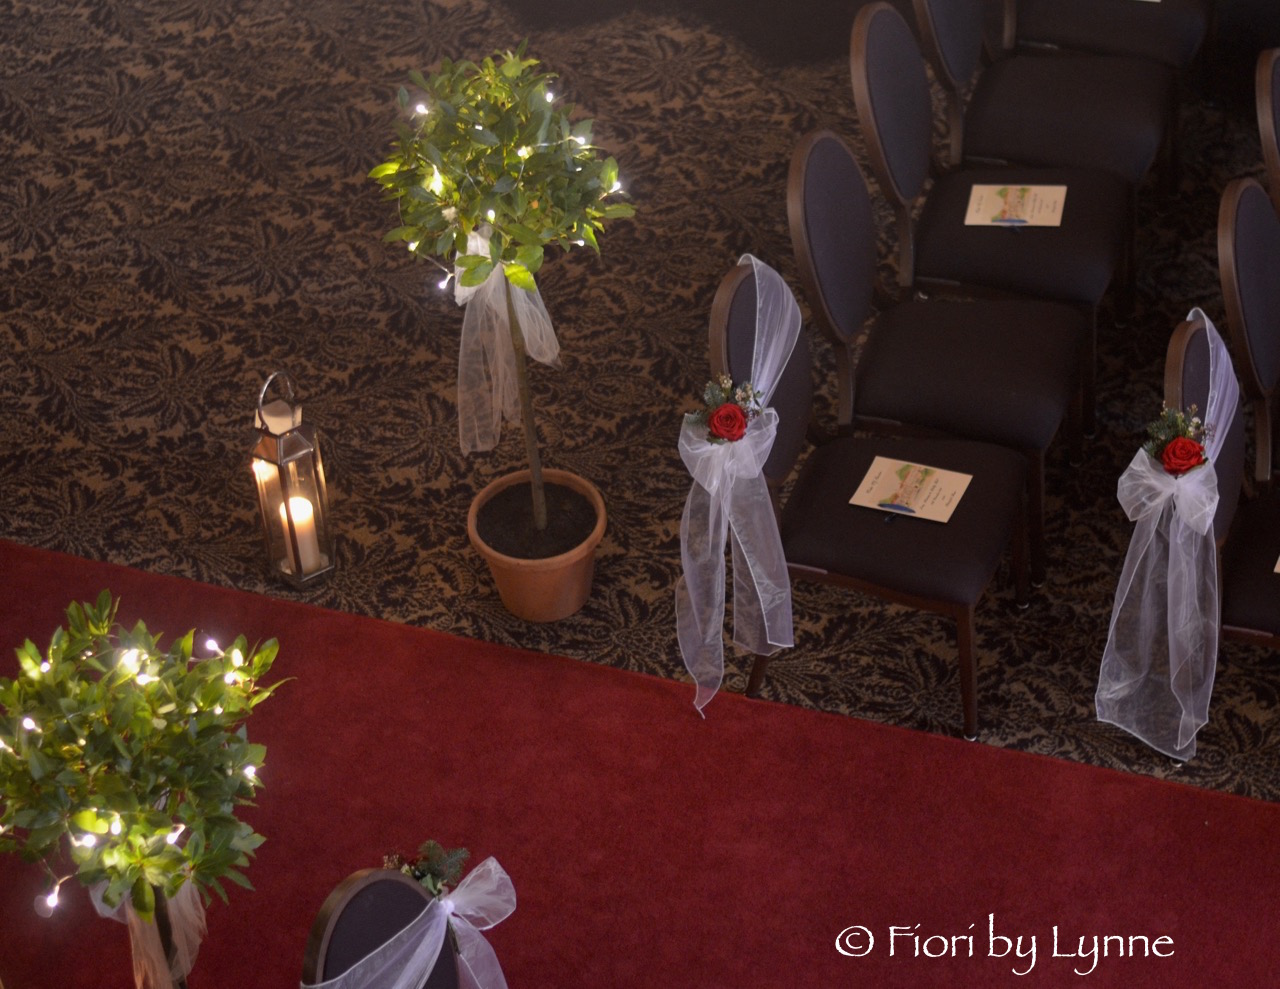 aisle-rhinefieldhouse-winter-chair-flowers-lanterns-baytrees-fairylights.jpg